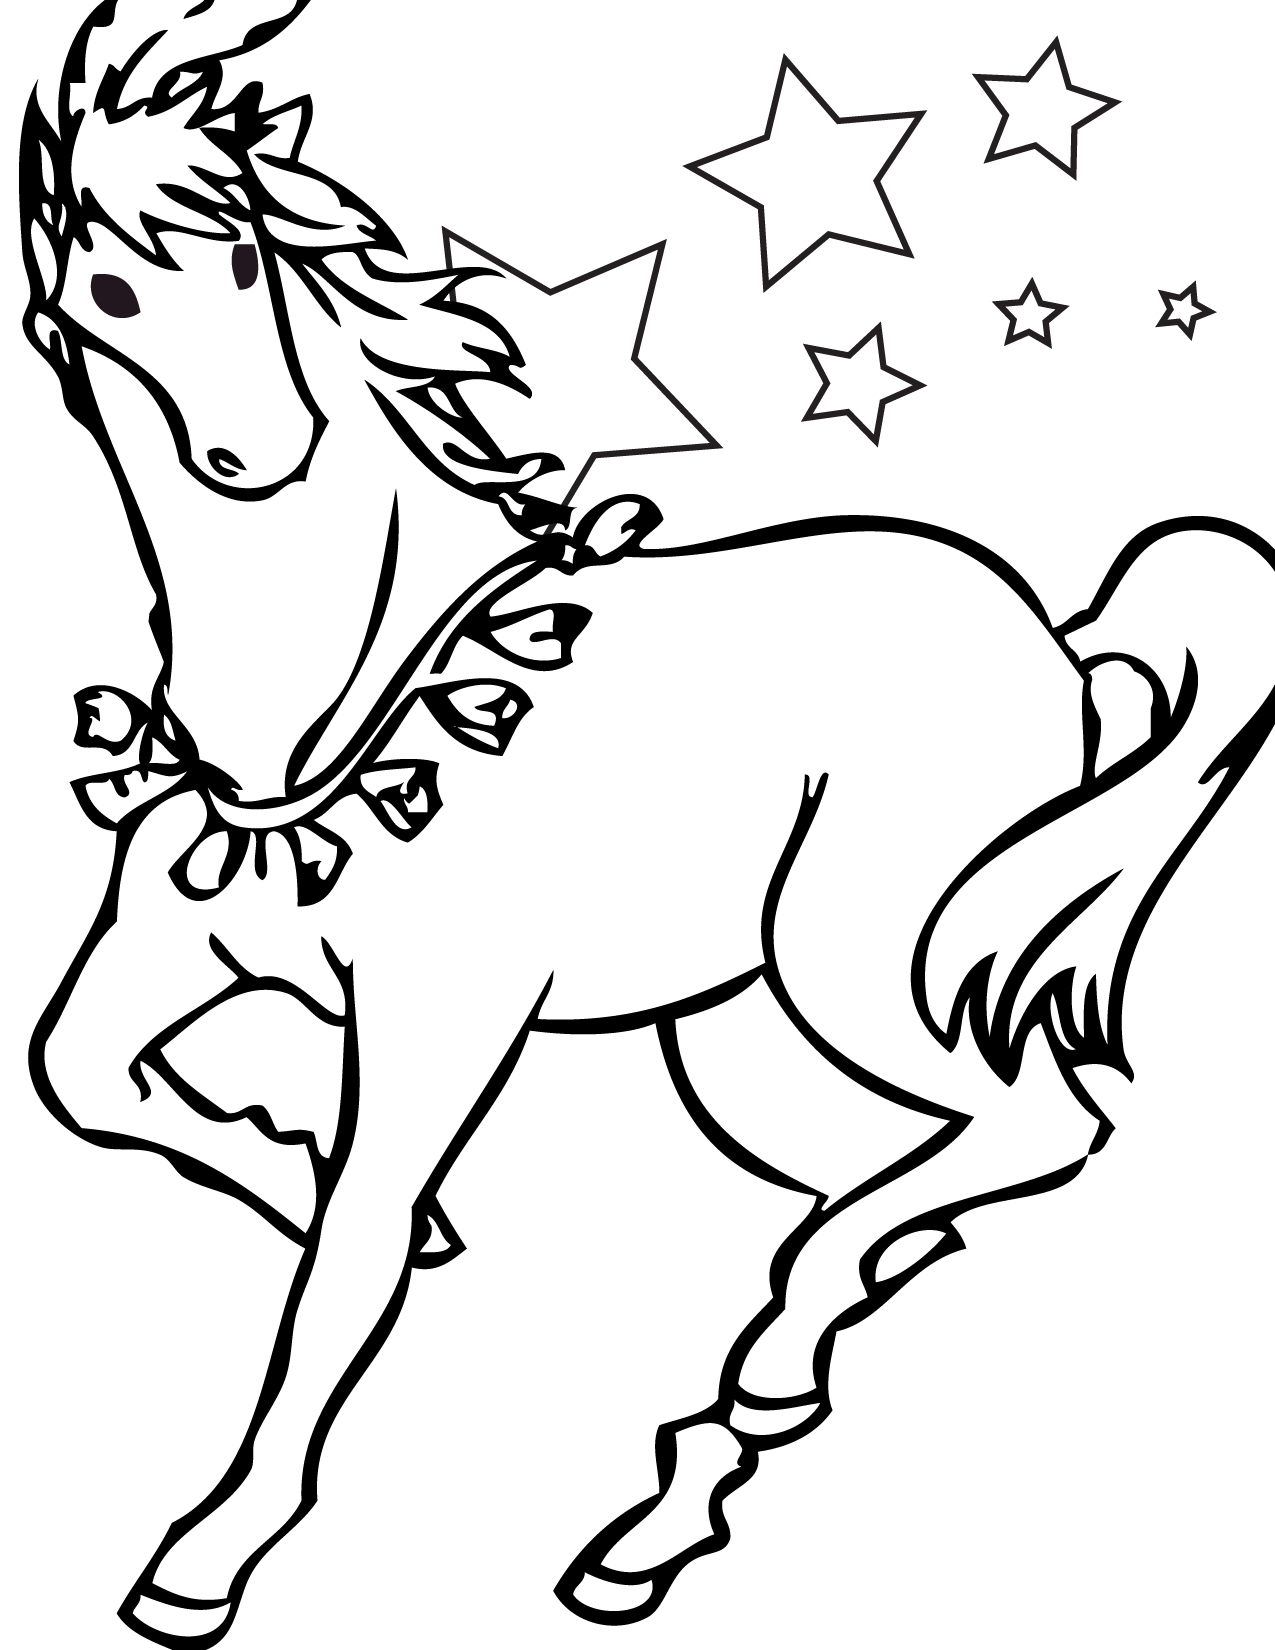 Free coloring pages com printable - Free Coloring Pages Of Horses